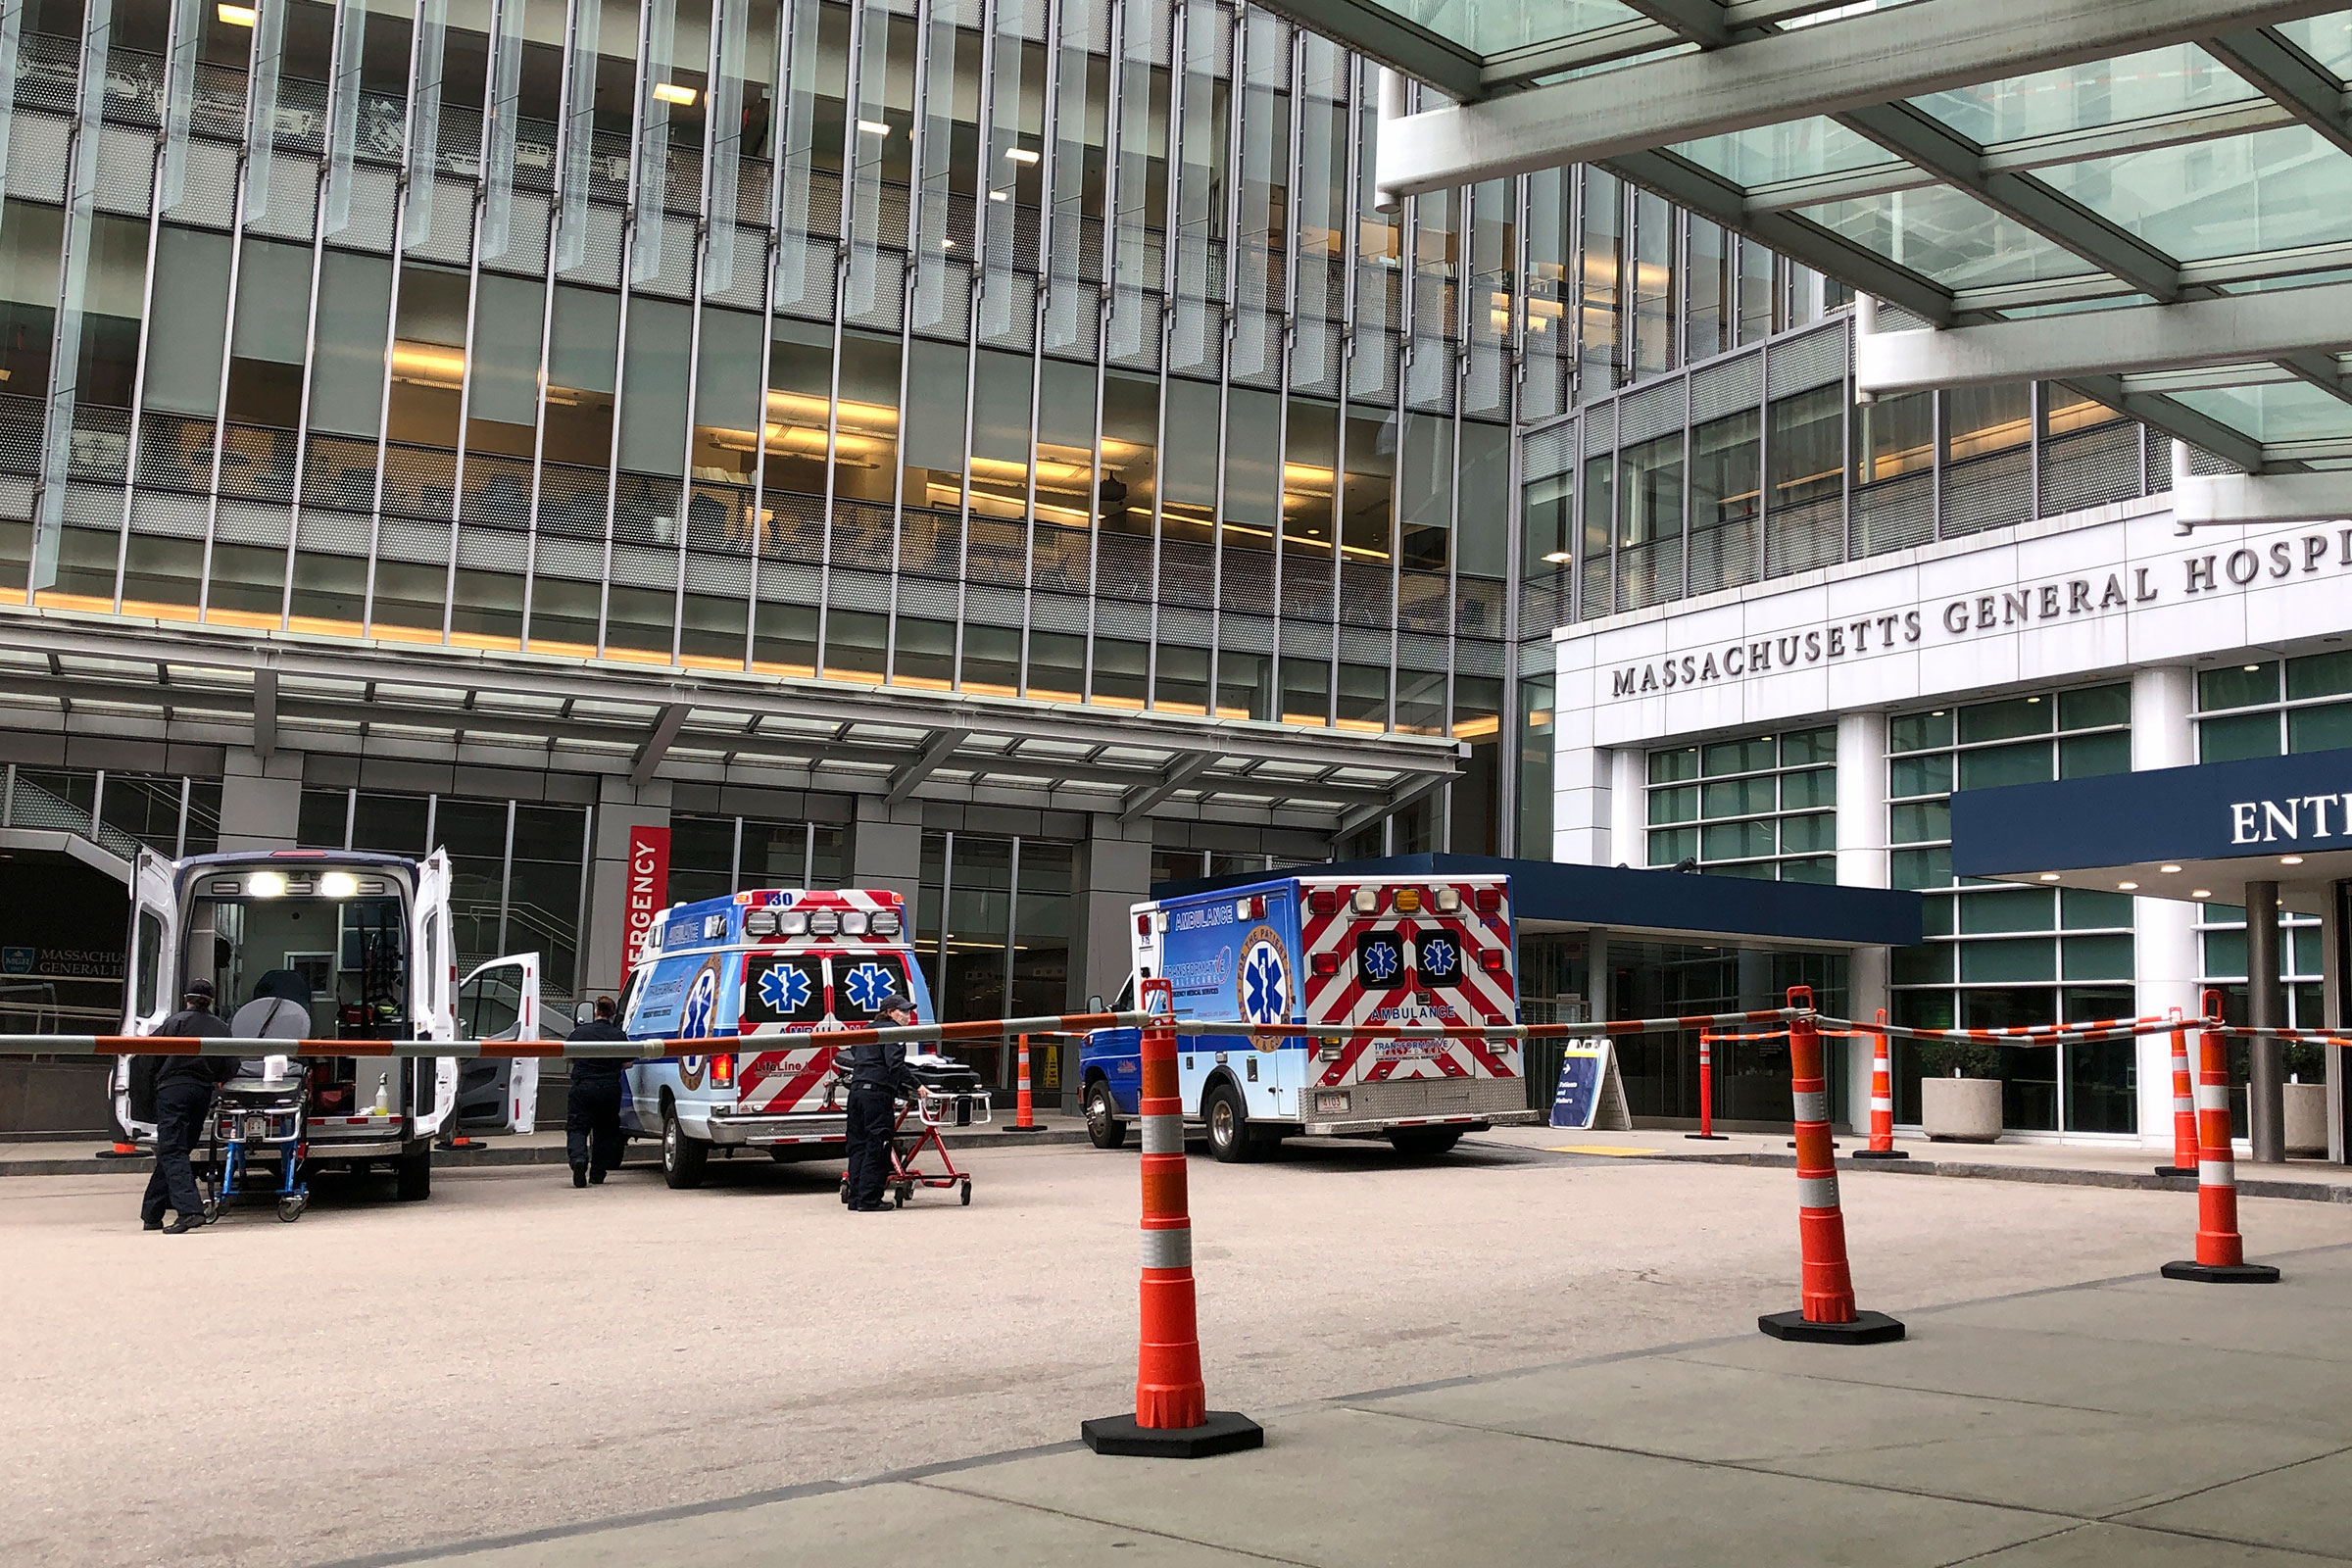 Ambulances are lined up at the main entrance of Massachusetts General Hospital in Boston on April 30.